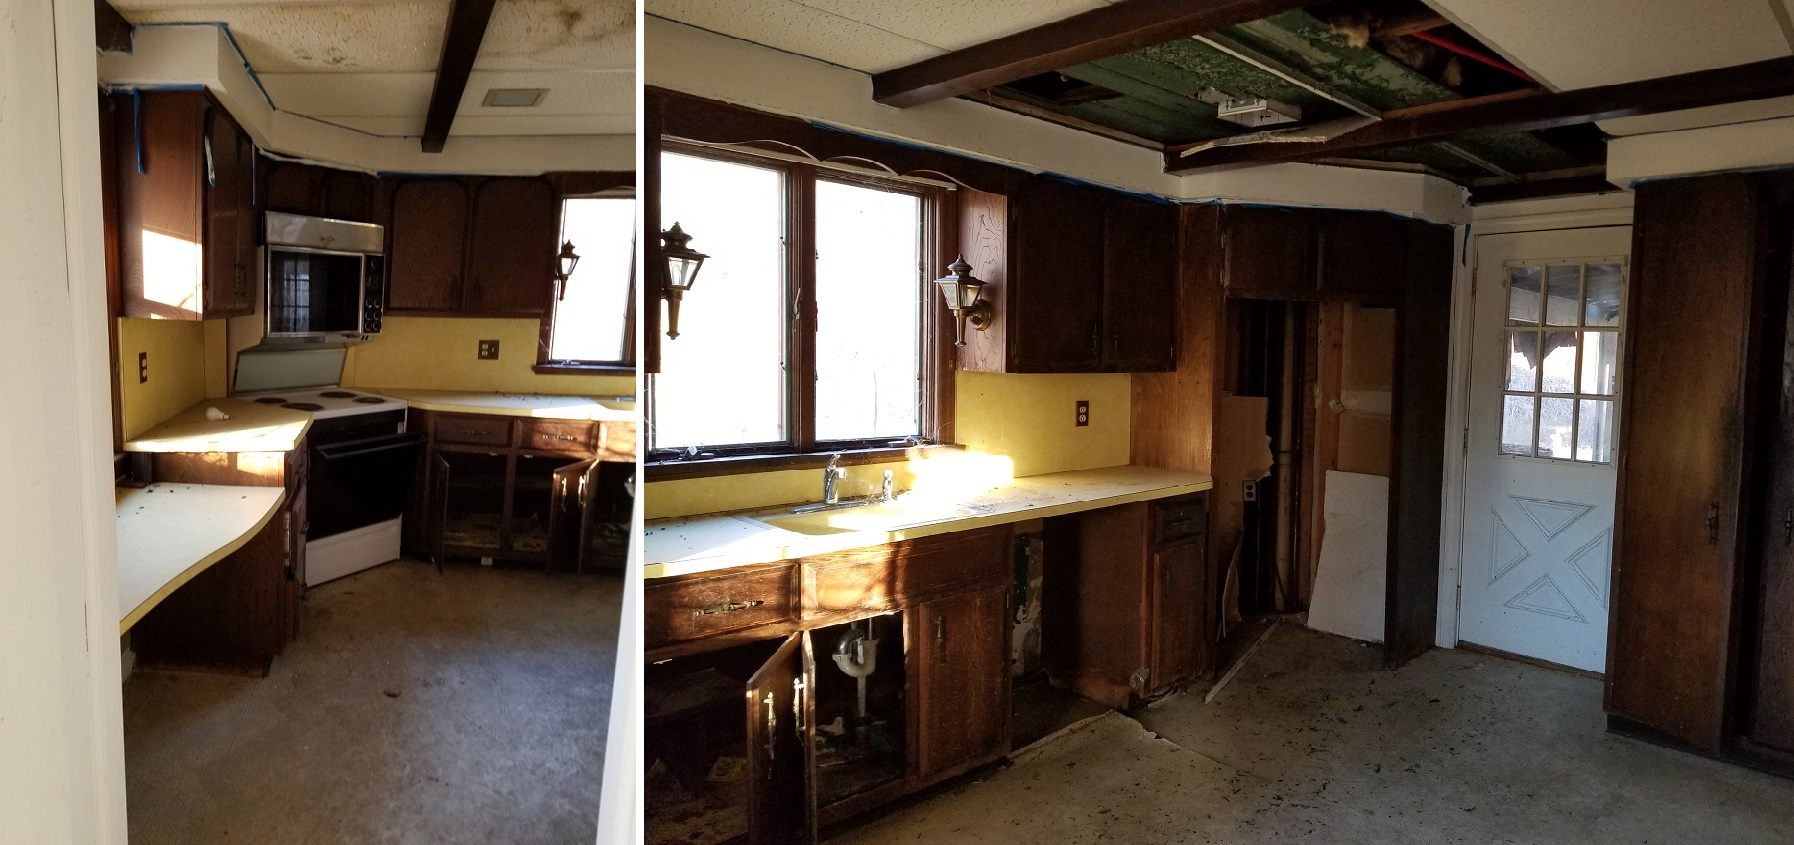 Existing 1970's kitchen